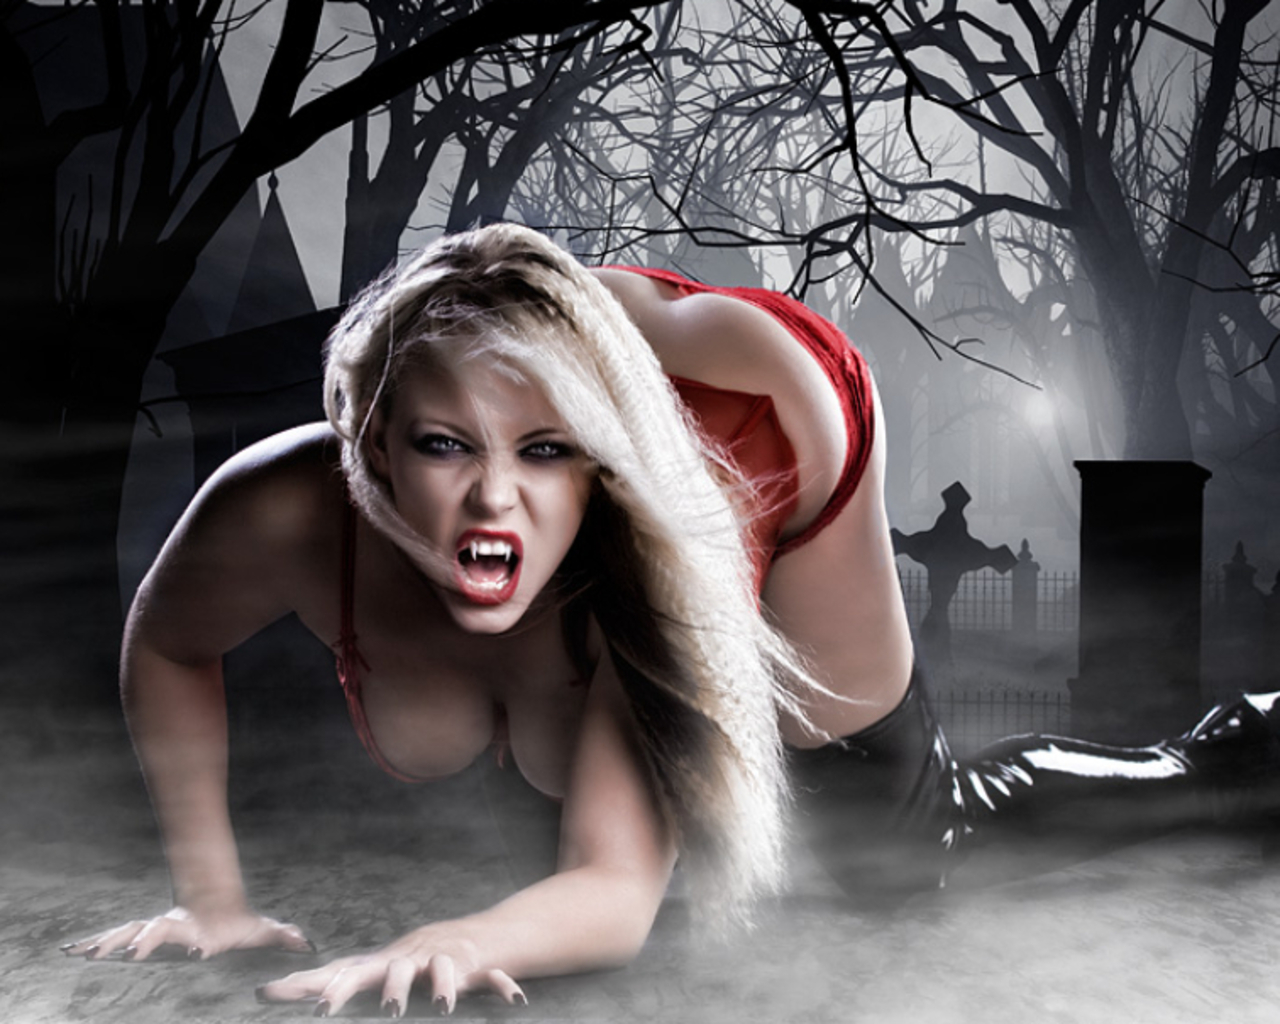 Vampire fakcing hot girl images xxx thumbs